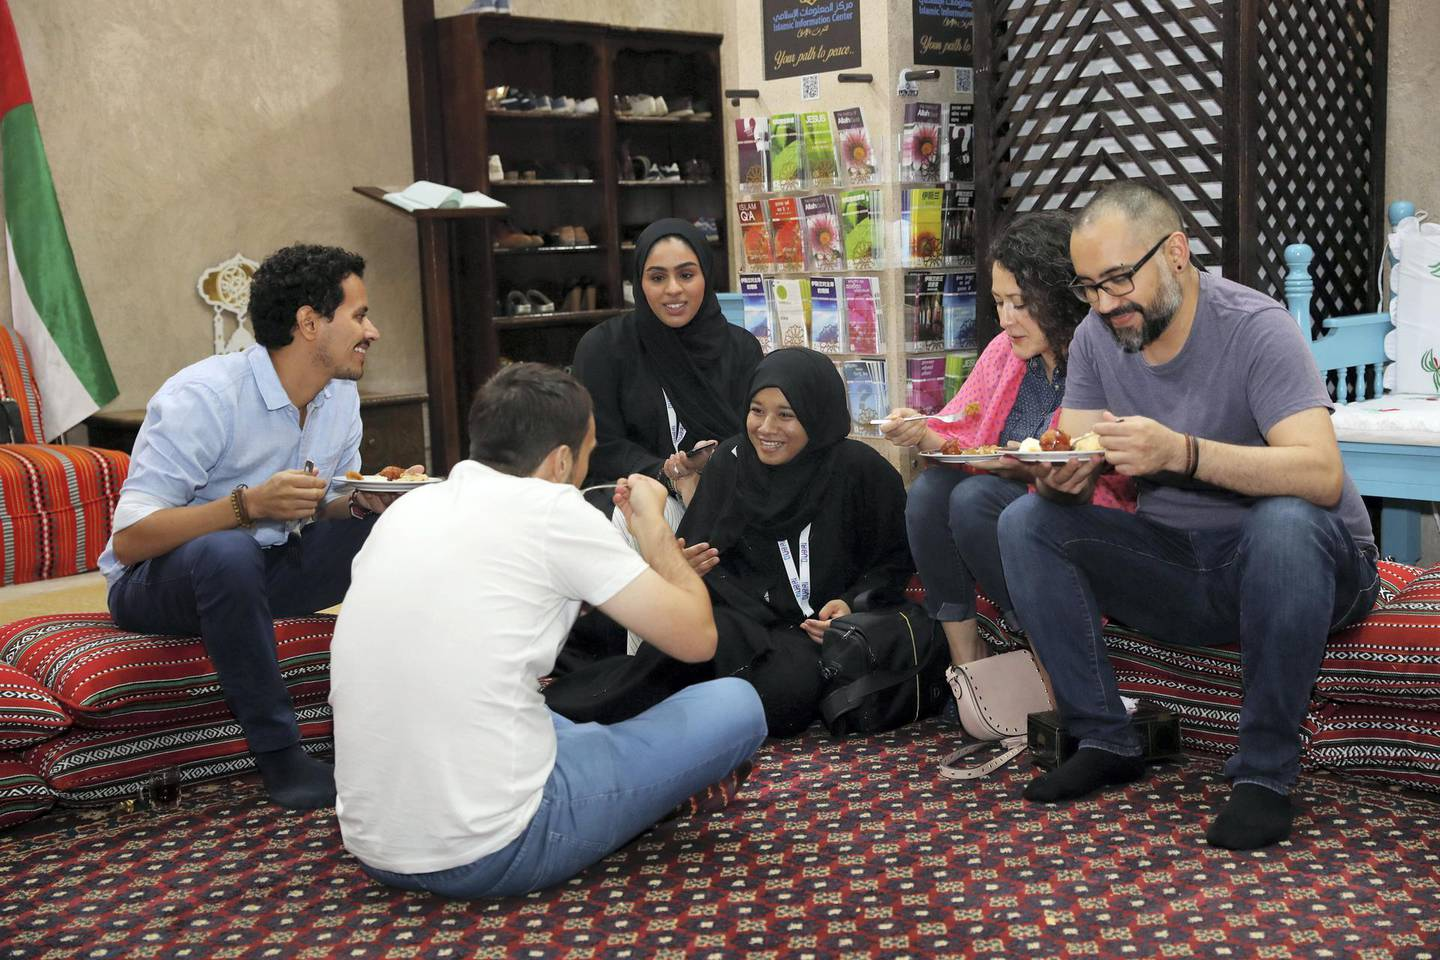 Dubai, United Arab Emirates - June 5th, 2018: Ramadan cultural night and Iftar at the Sheikh Mohammed Centre for Cultural Understanding. Tuesday, June 5th, 2018 at Sheikh Mohammed Centre for Cultural Understanding, Dubai. Chris Whiteoak / The National